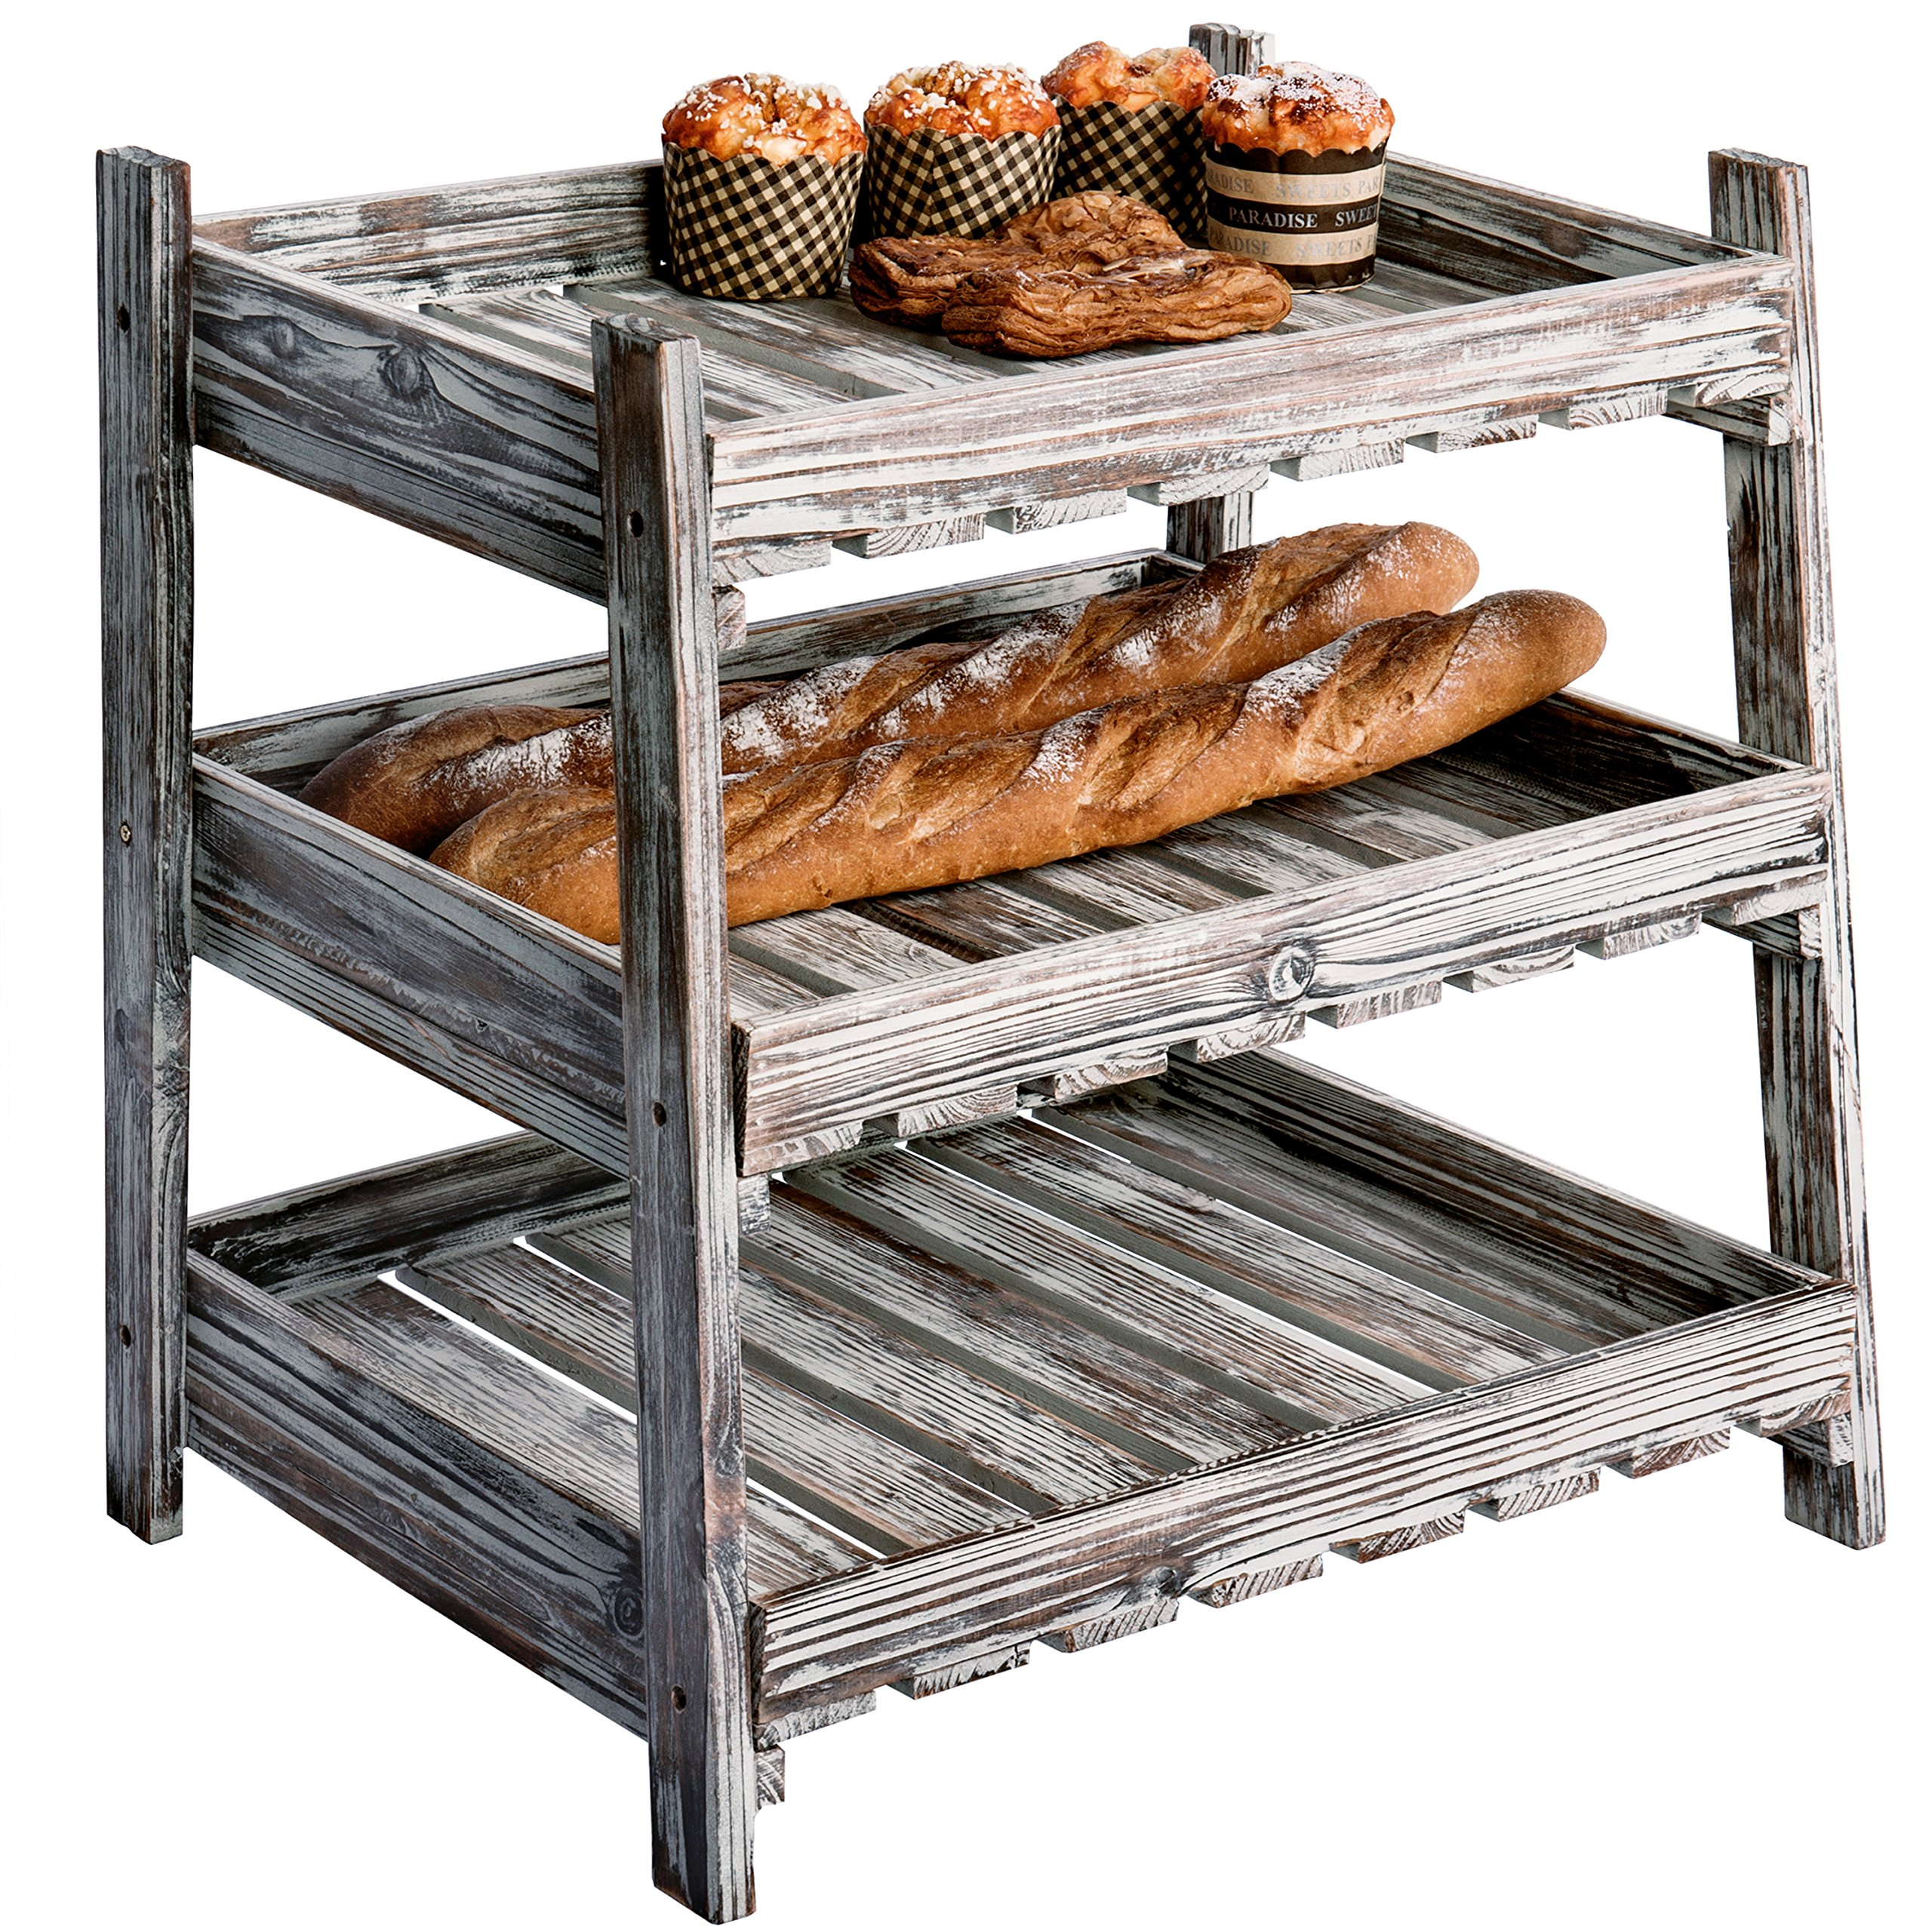 MyGift Multipurpose 3-Tier Country Rustic Wood Crate Design Tabletop Organizer Display Rack by MyGift